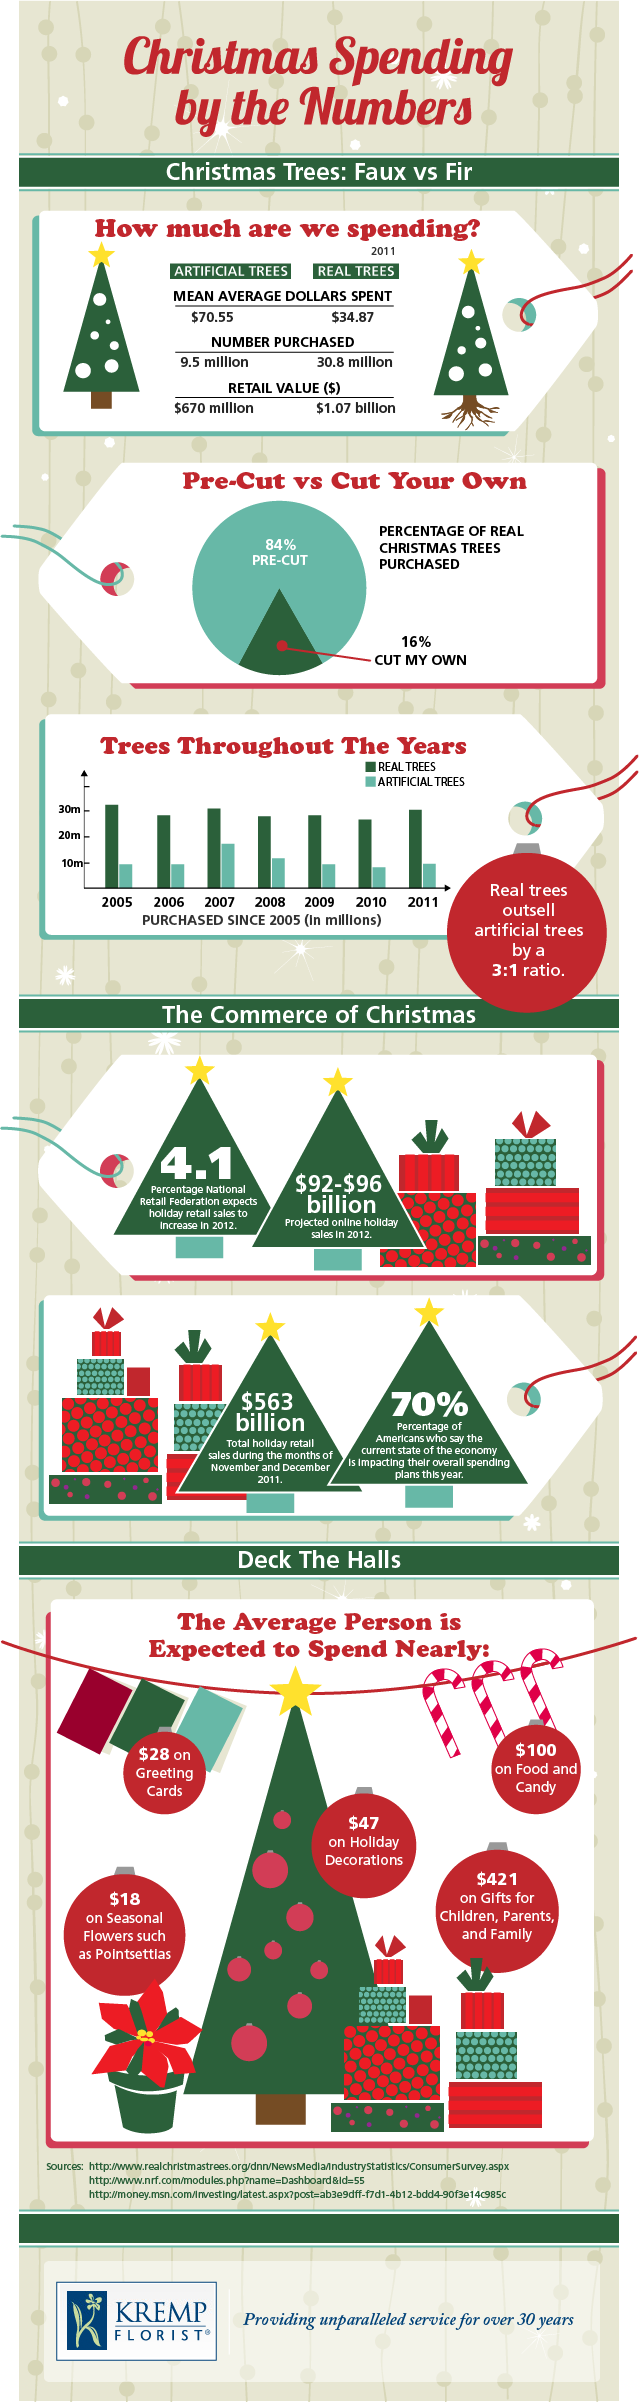 Christmas Spending by the Numbers